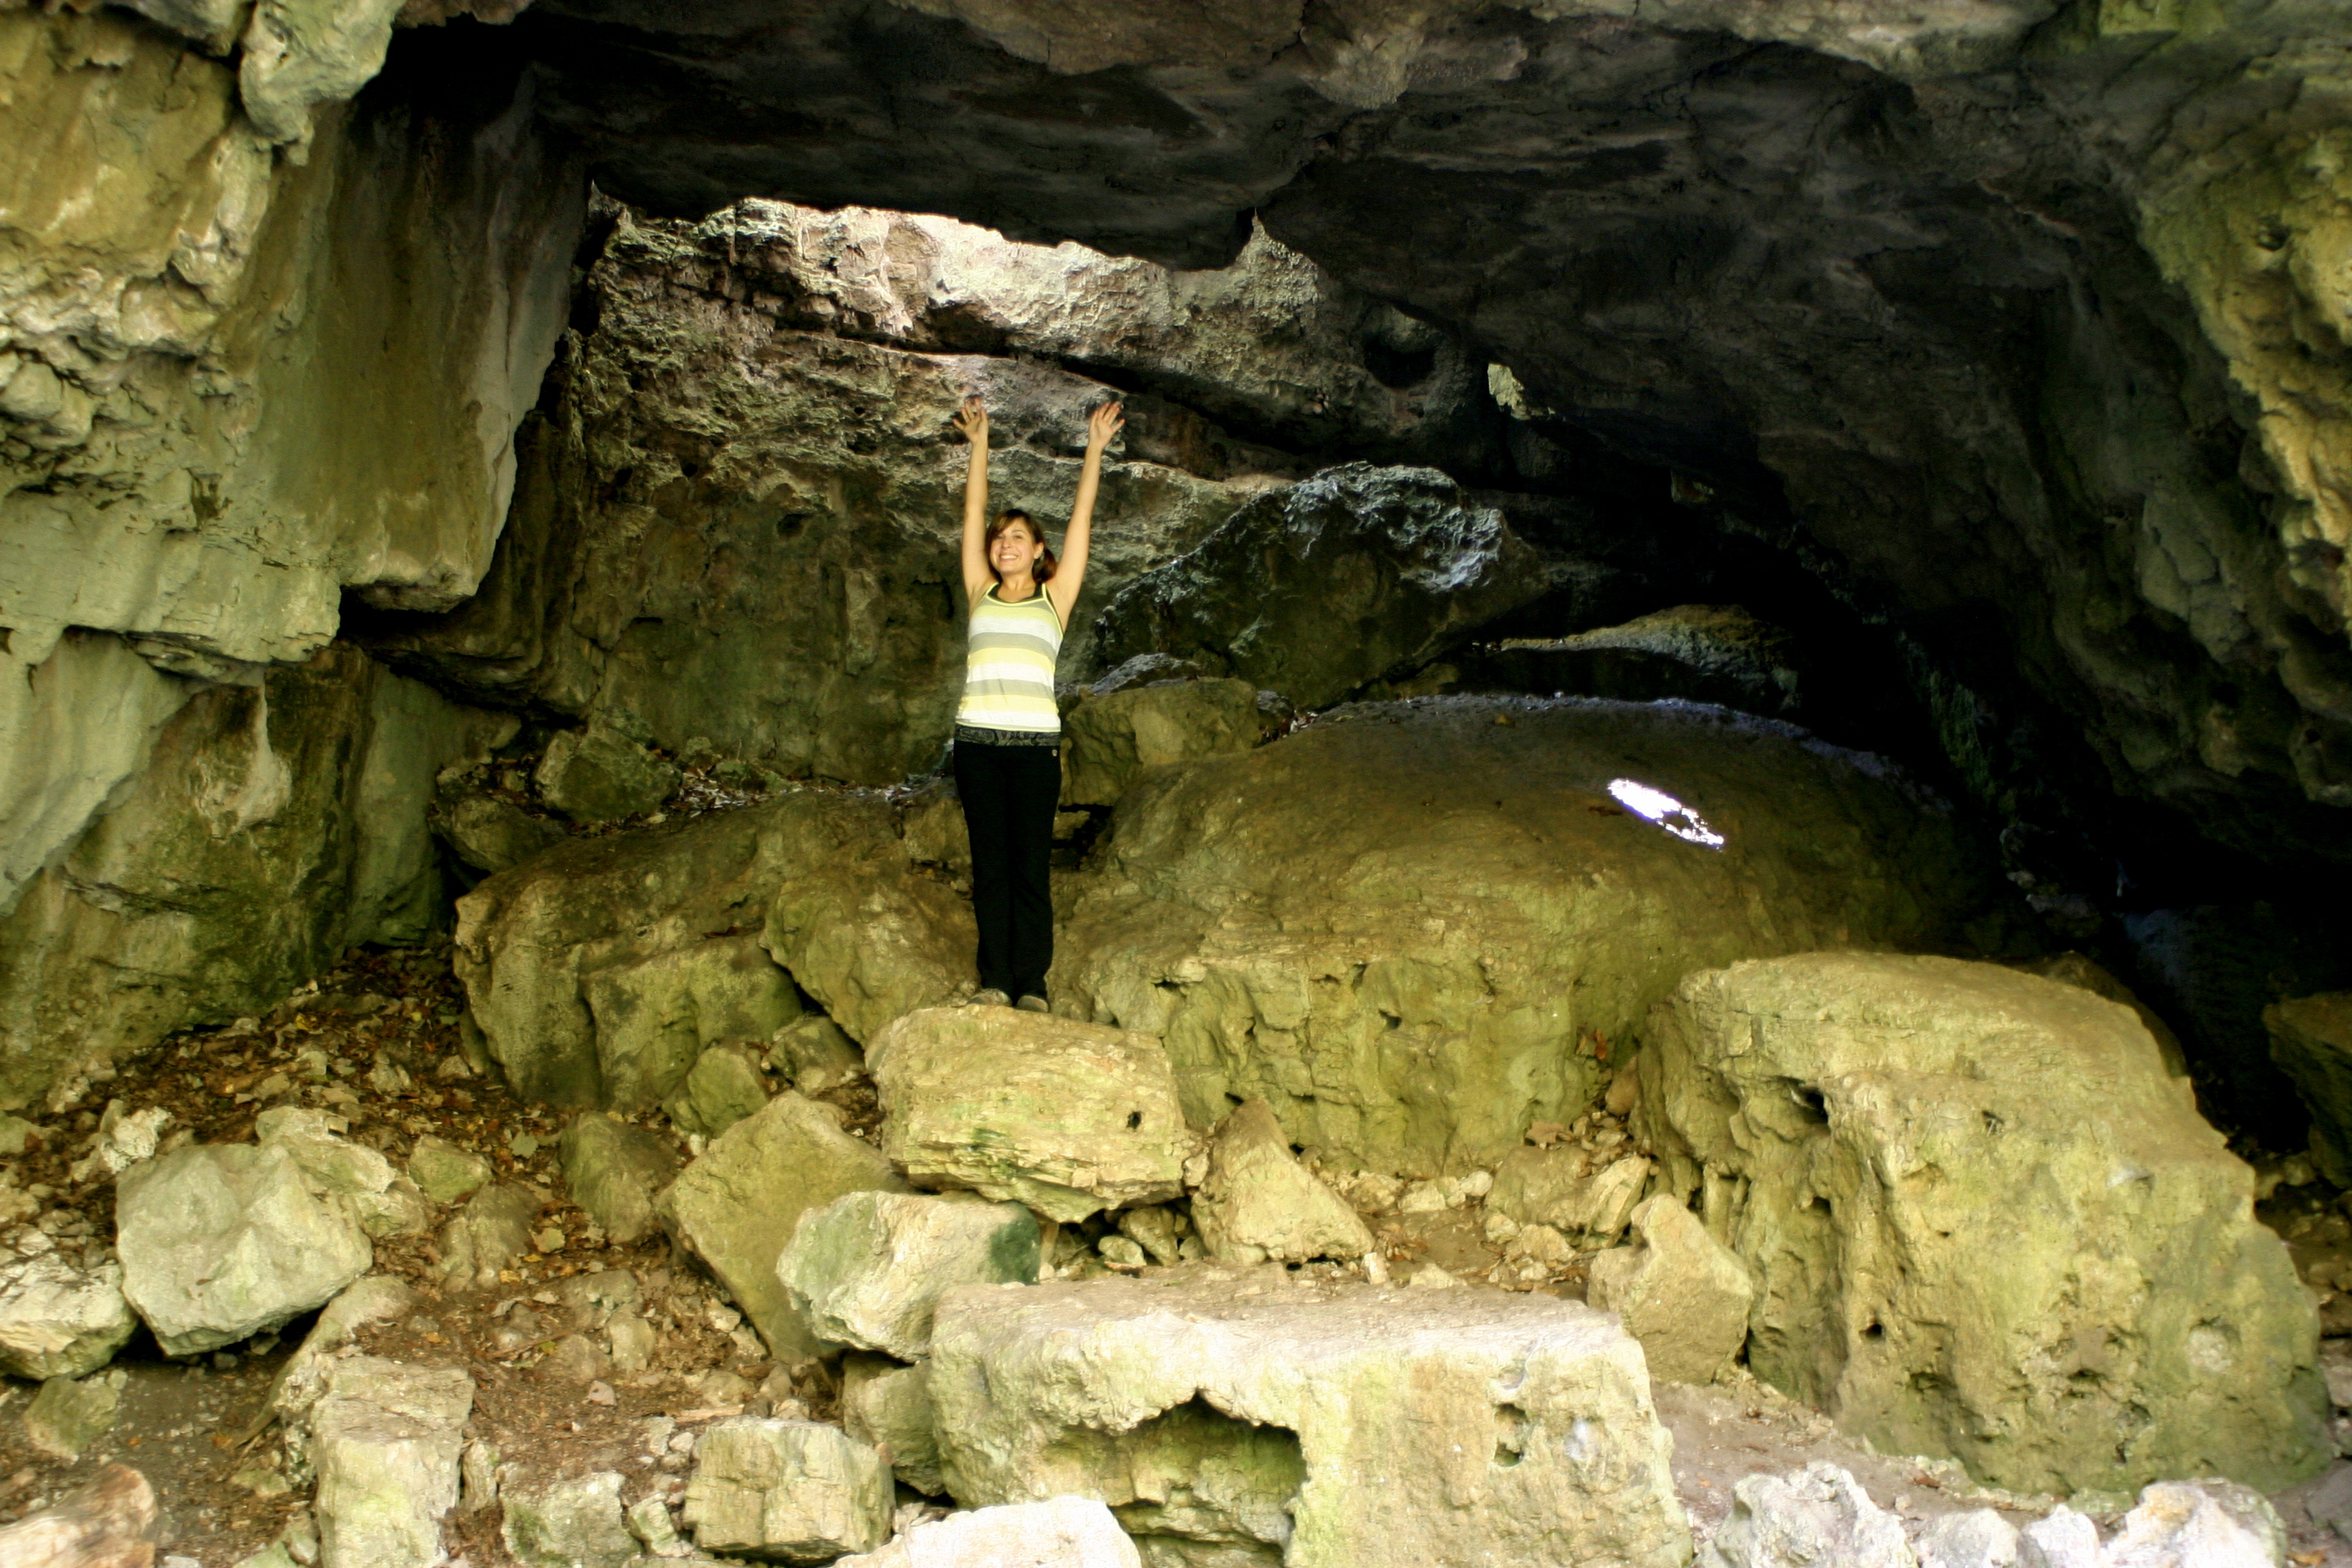 Me in Counterfeiter's Cave